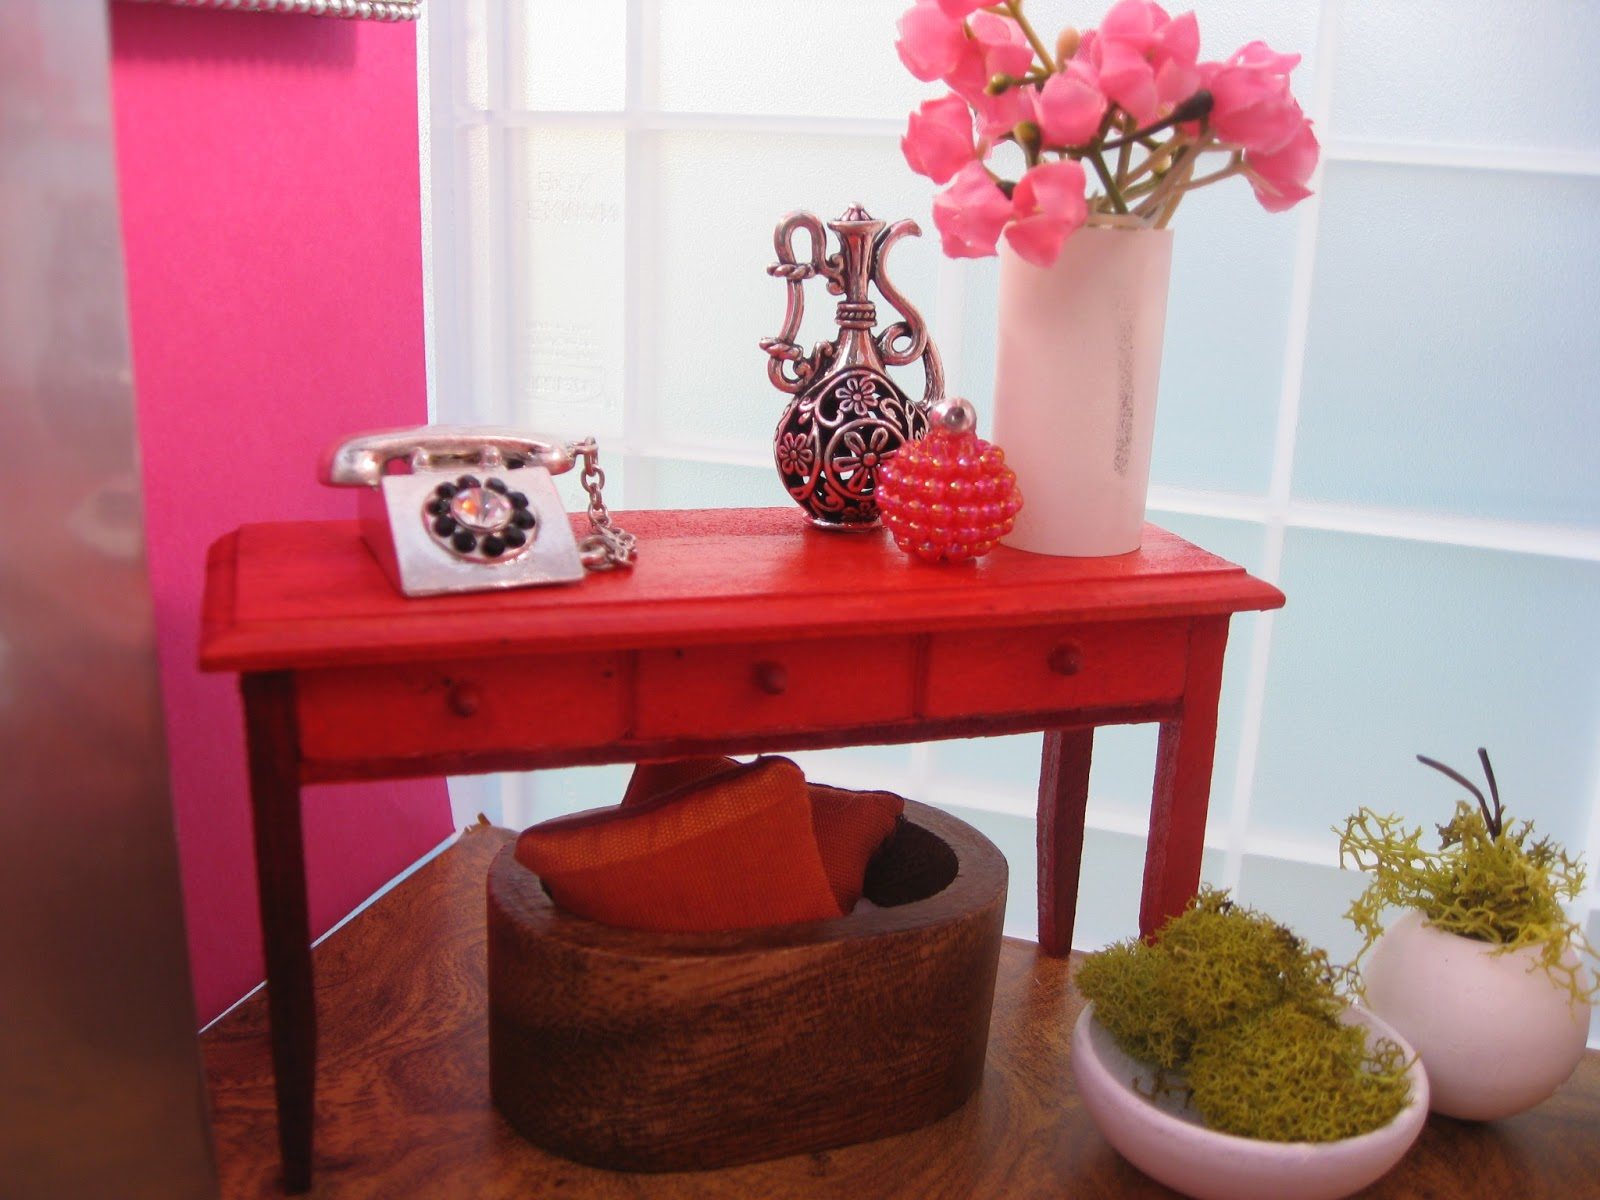 gl vase with cork with Glamboyance In Pink And Orange on Friar Tuck Vintage Goebel Creamer Mini also Jumbo Wine Glass Oversized Decoration Giant Cooler Home Interiors Catalog Large Decorative Costco Gl moreover Wine Bar Hutch also 2 as well Wine Bar Hutch.